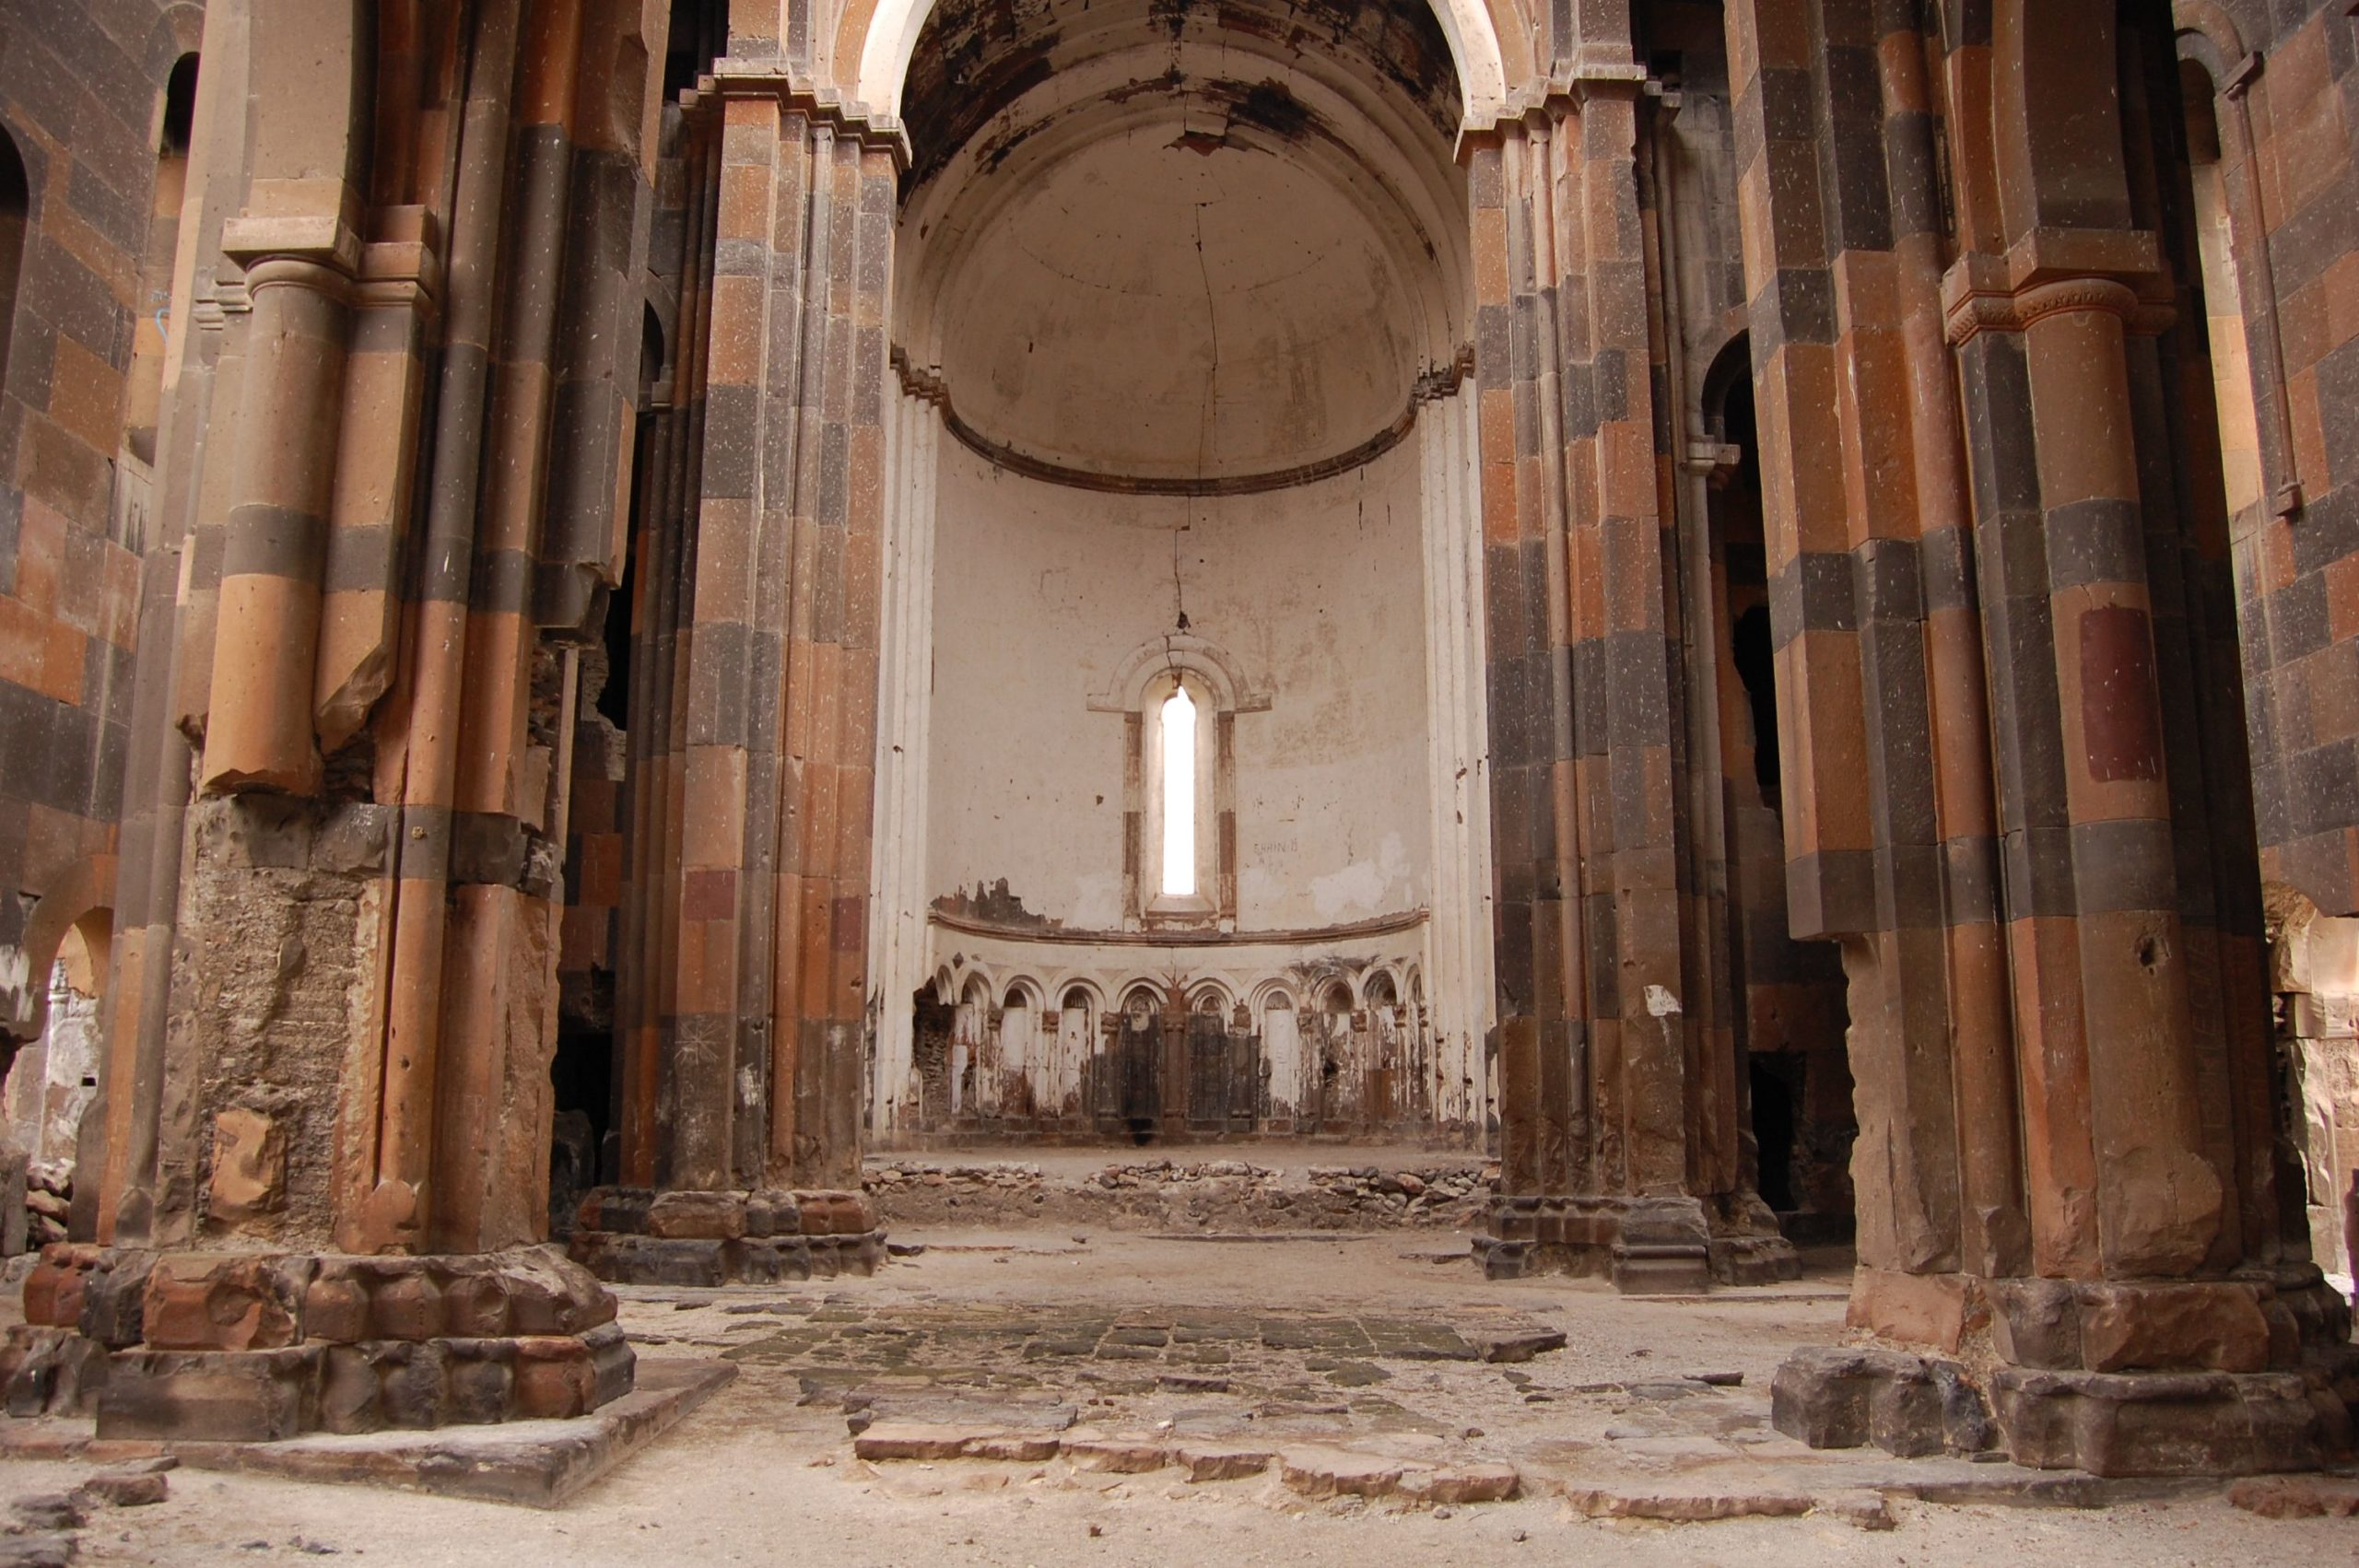 A look inside one of the remaining ancient churches